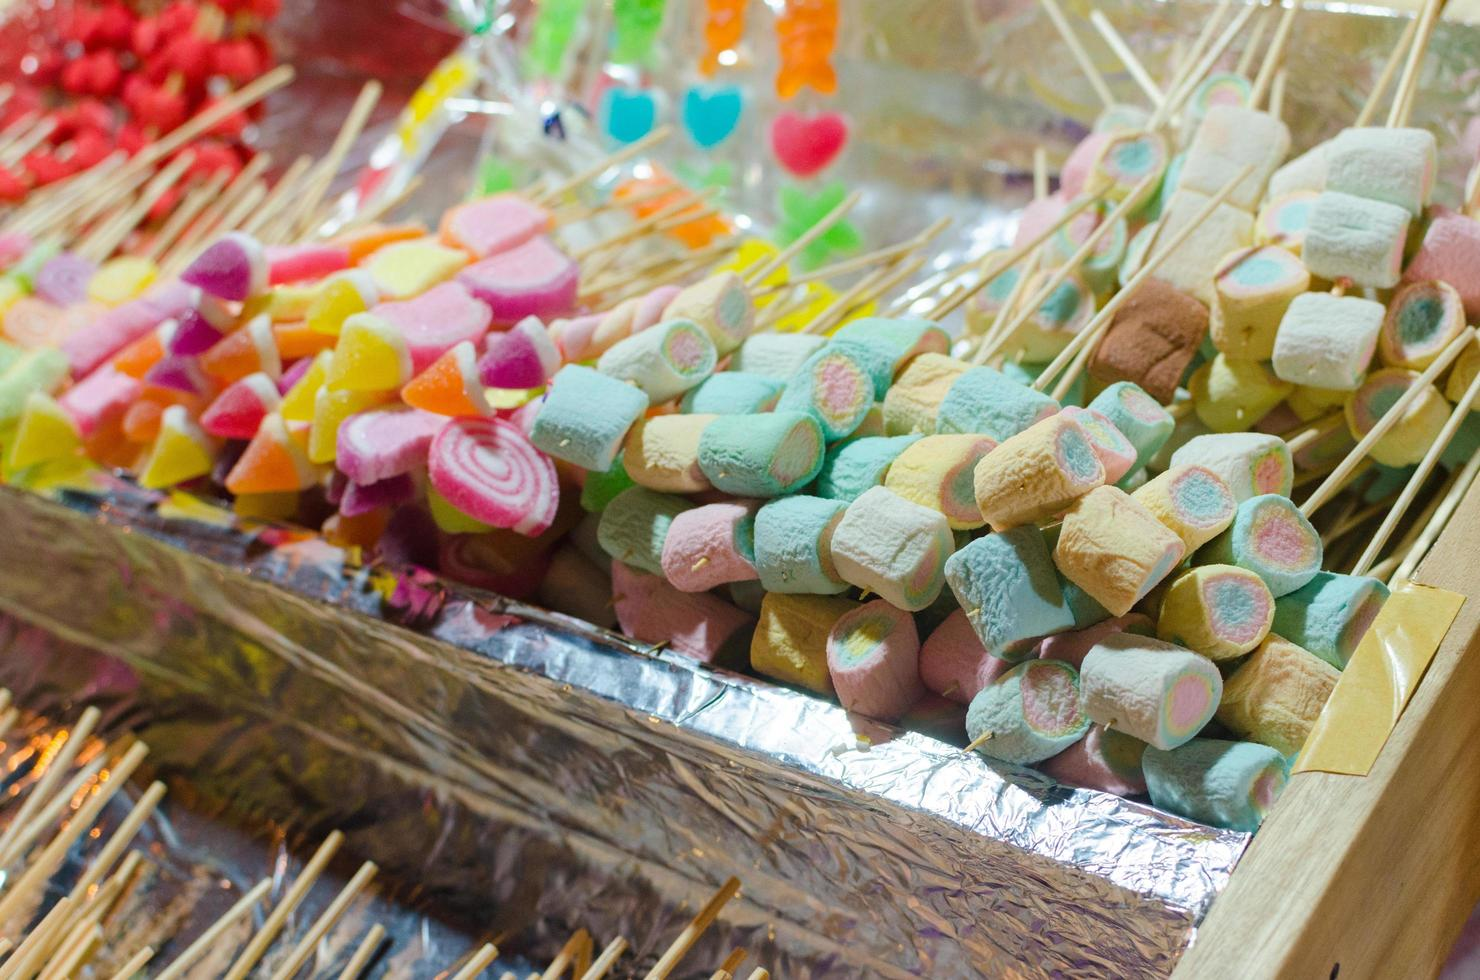 caramelle colorate marshmallow foto